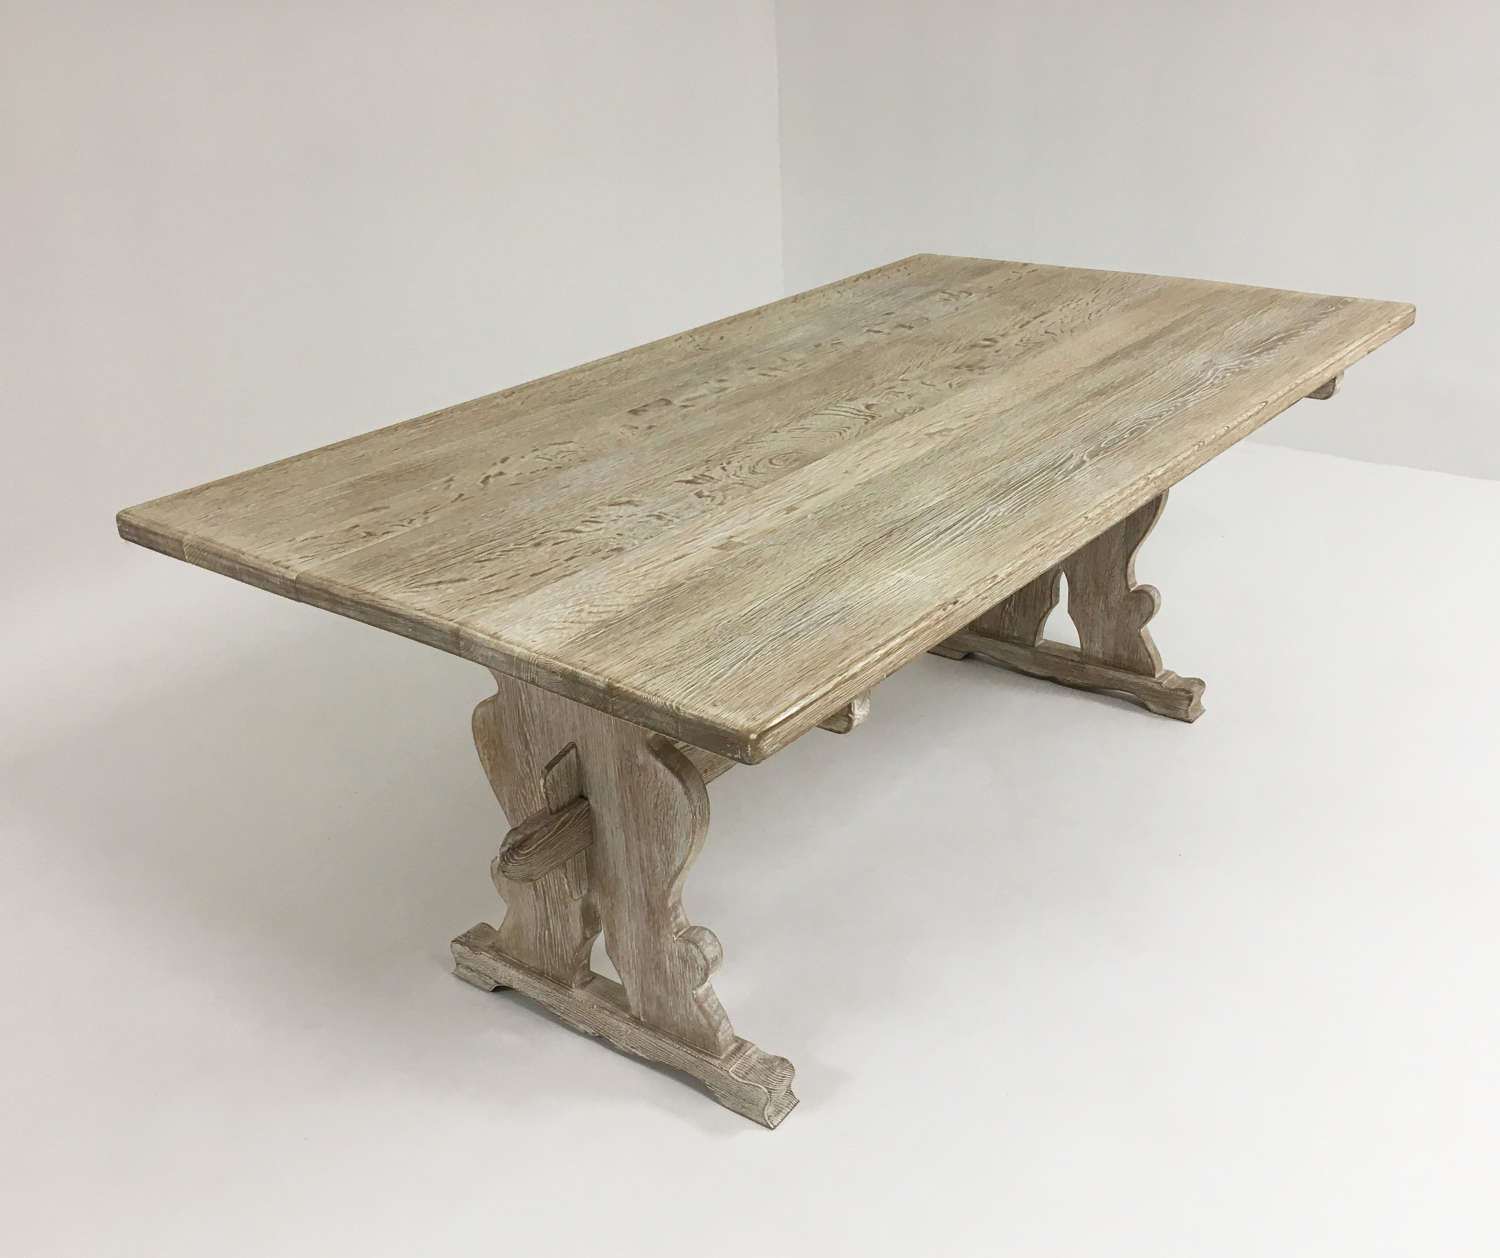 Early 20th century Swedish Extending Dining Table